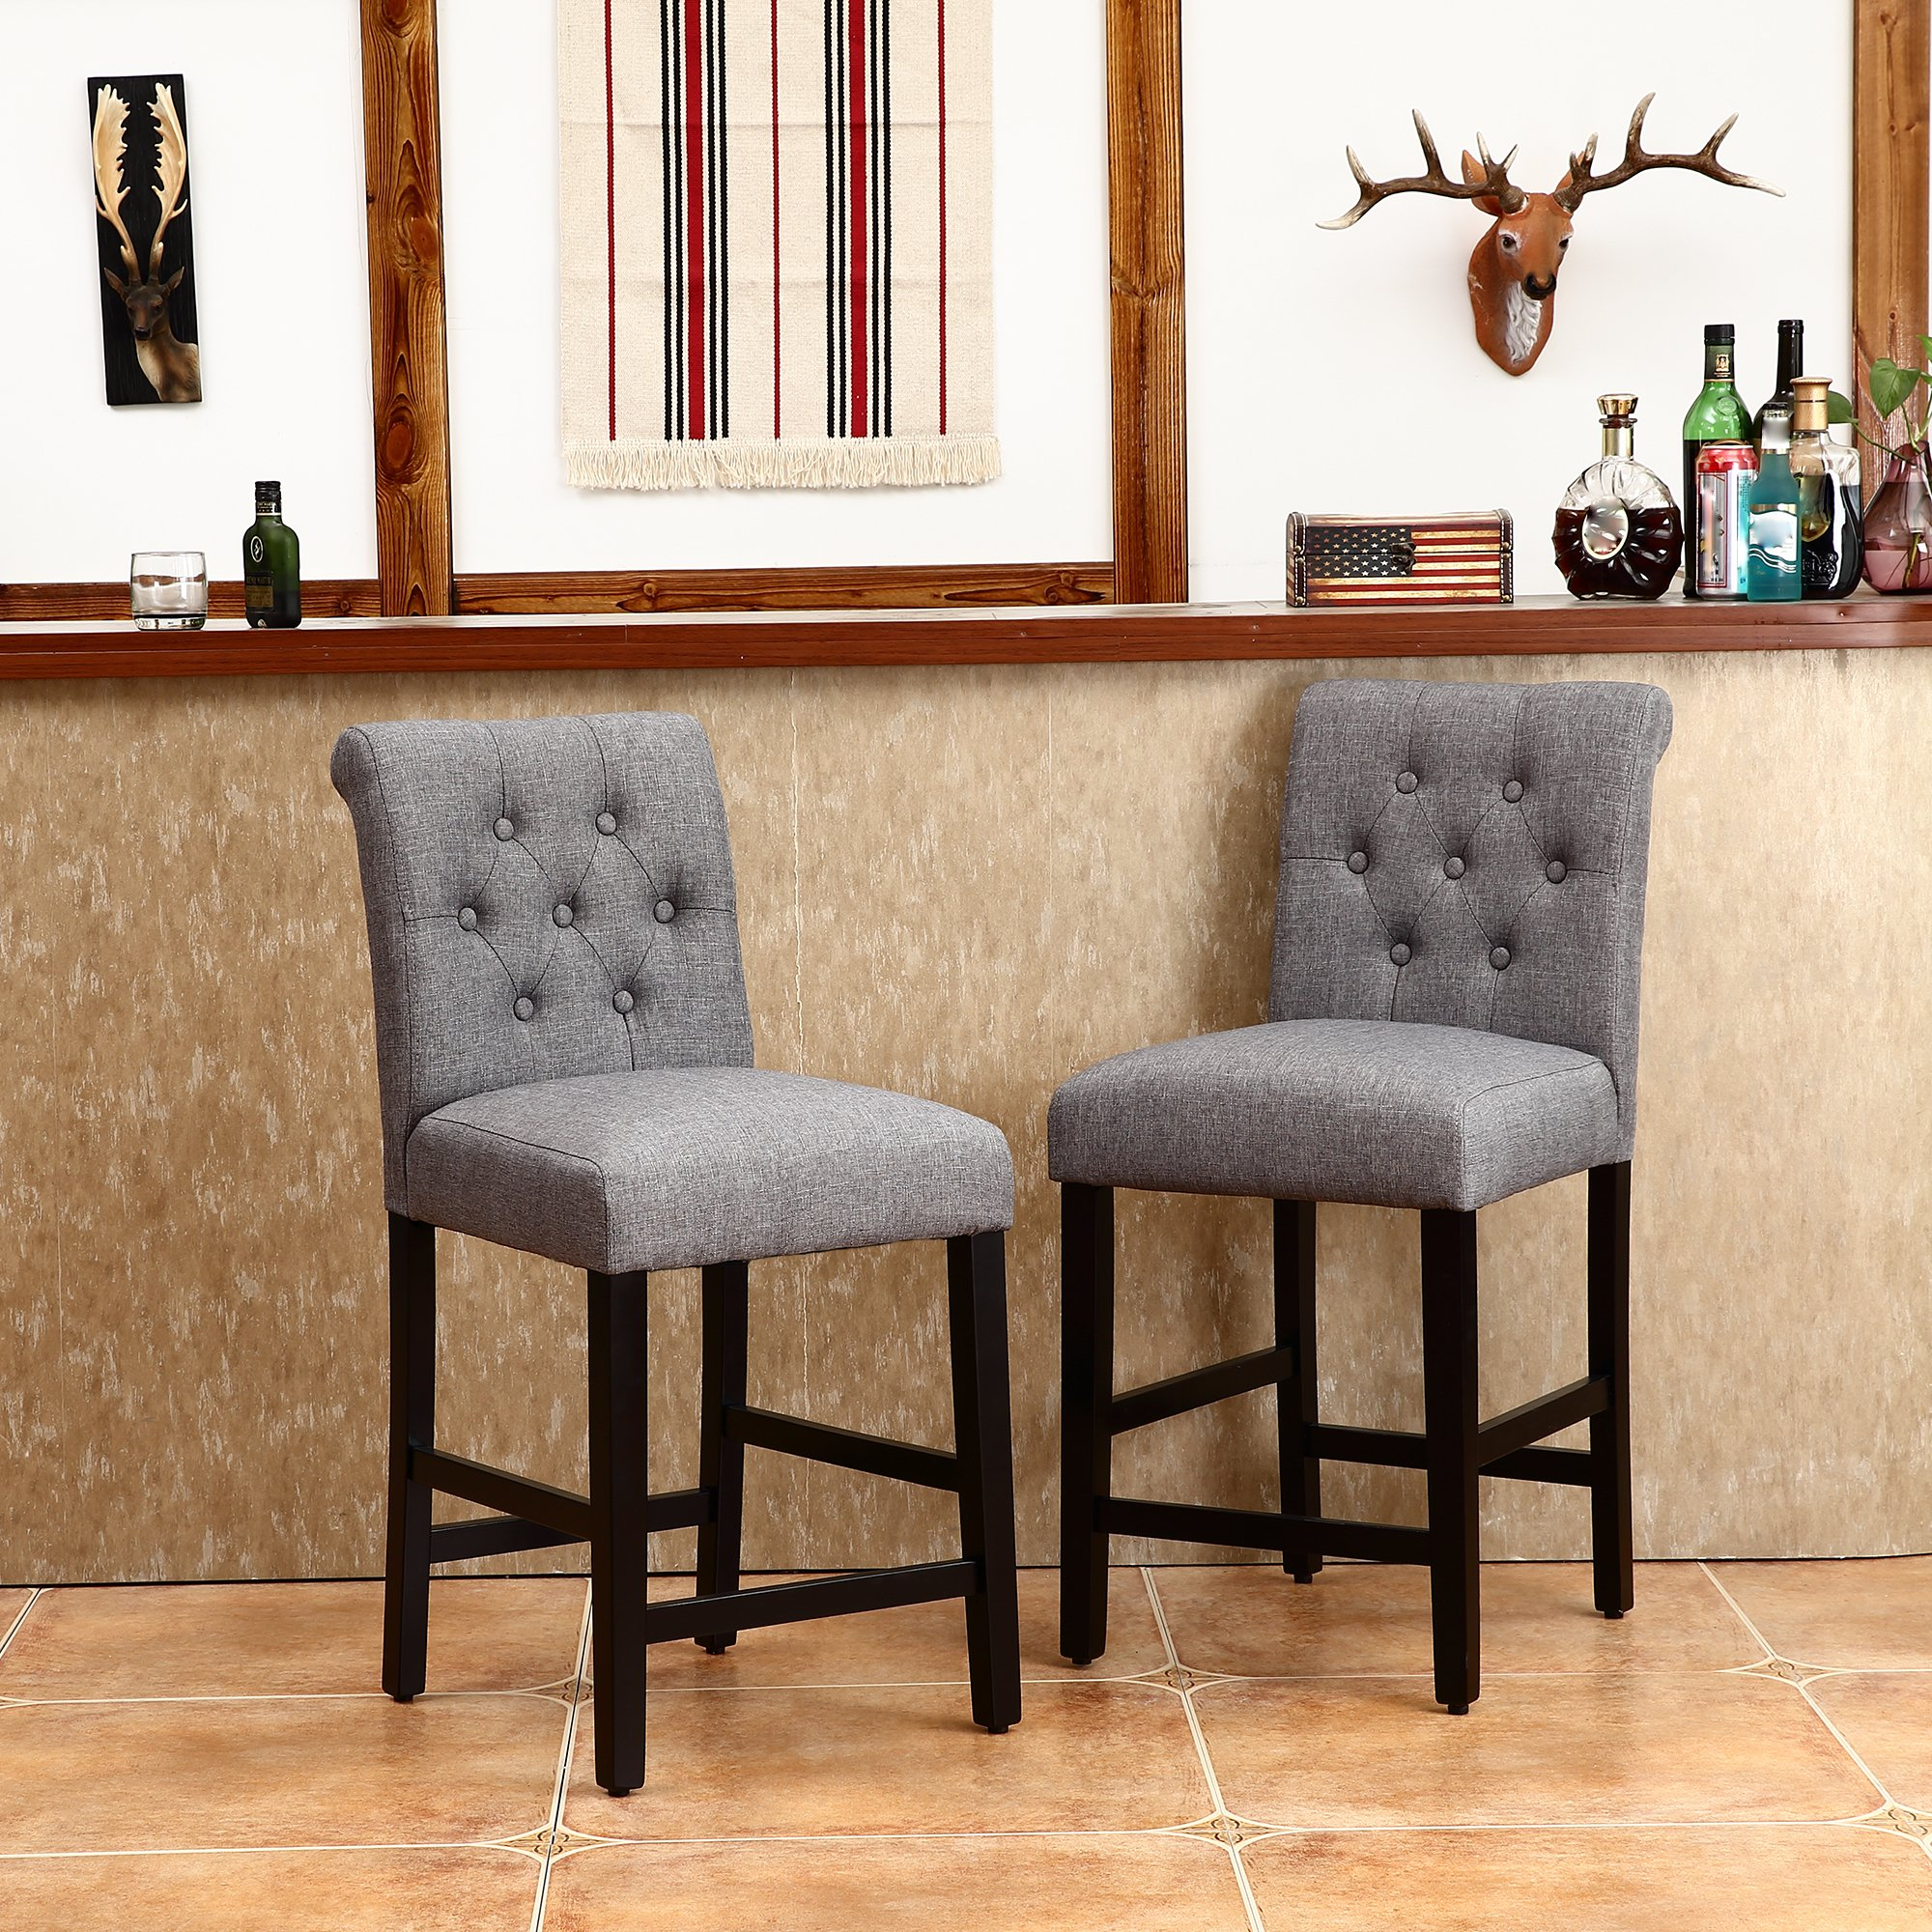 LSSBOUGHT Set of 2 Button-tufted Fabric Barstools Dining High Counter Height Side Chairs (Seat Height: 24'', Gray) by LSSBOUGHT